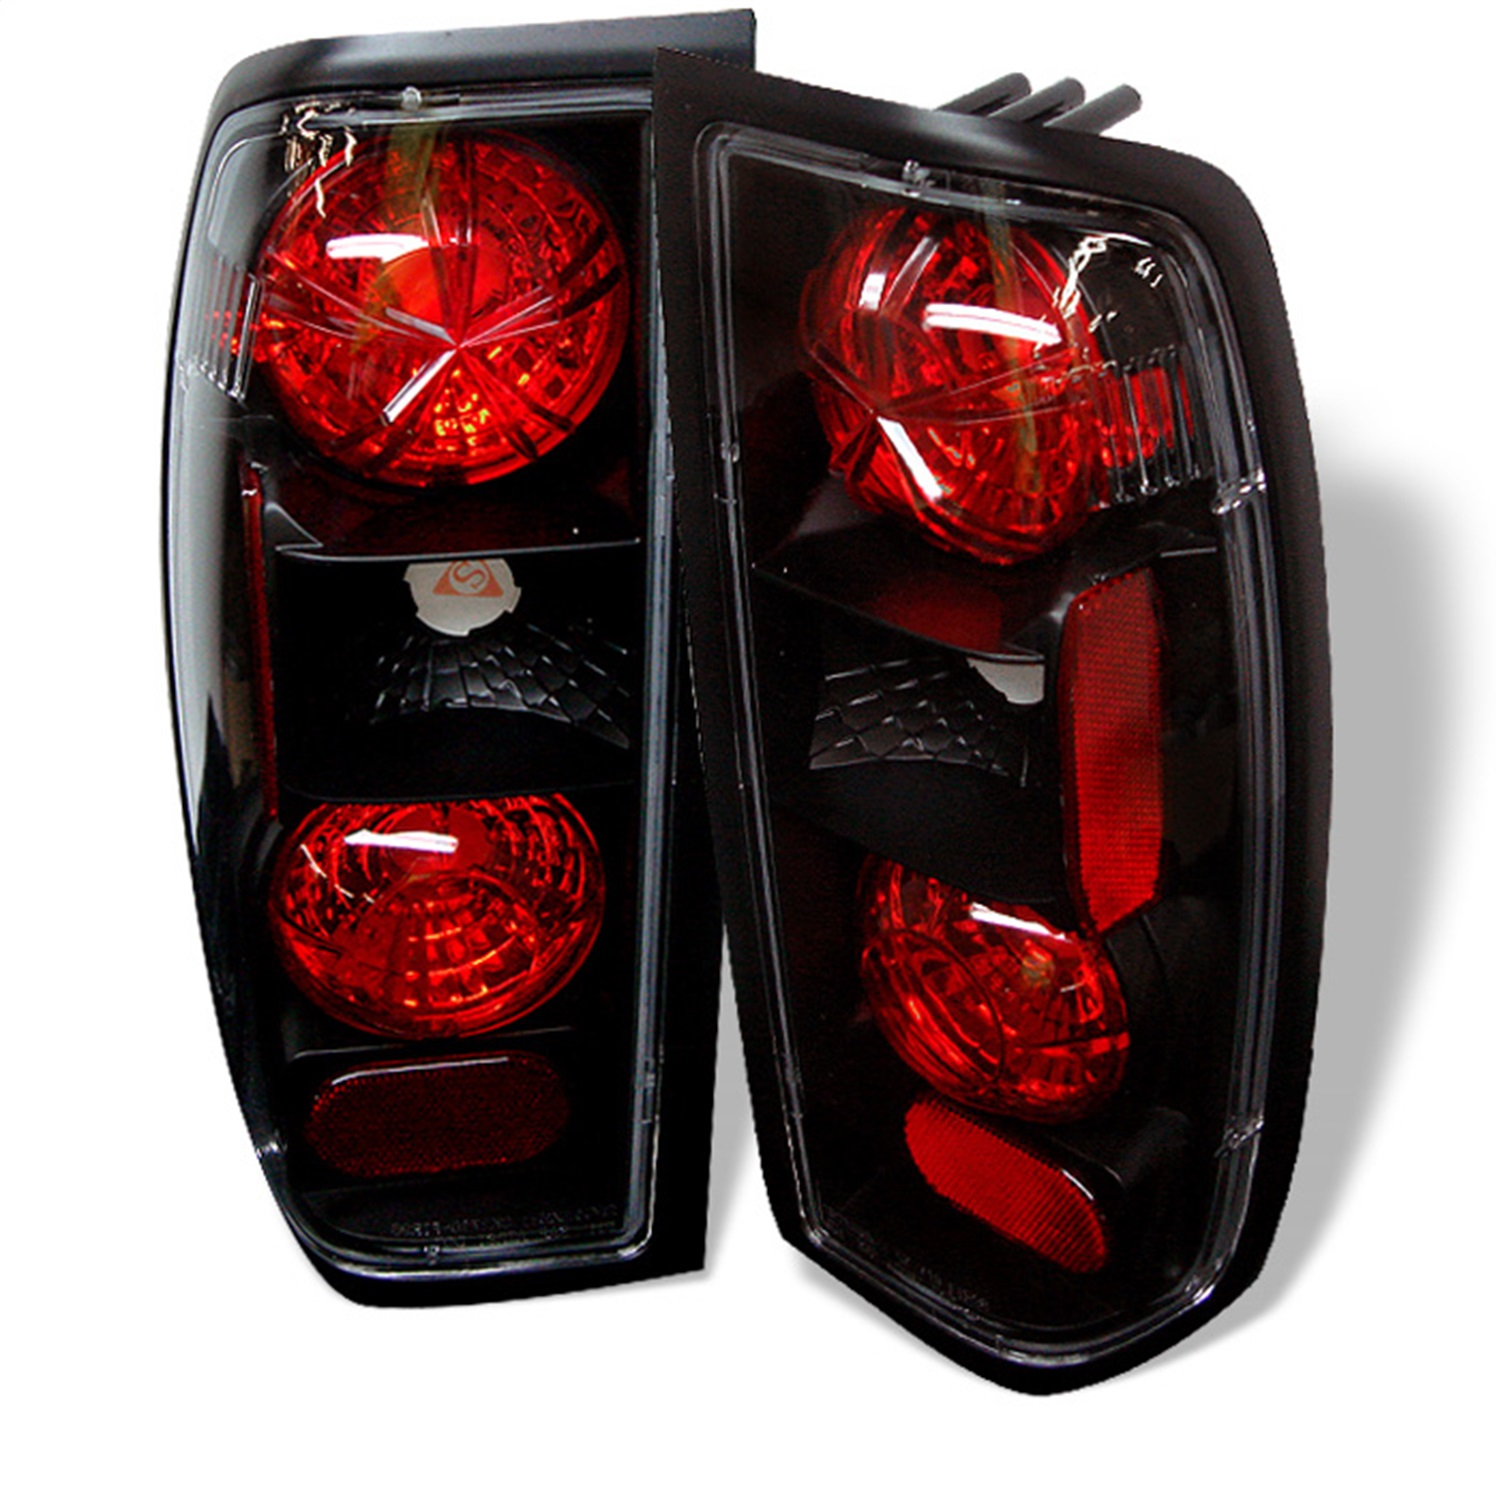 Spyder Auto 5006837 Euro Style Tail Lights Fits 98-00 Frontier